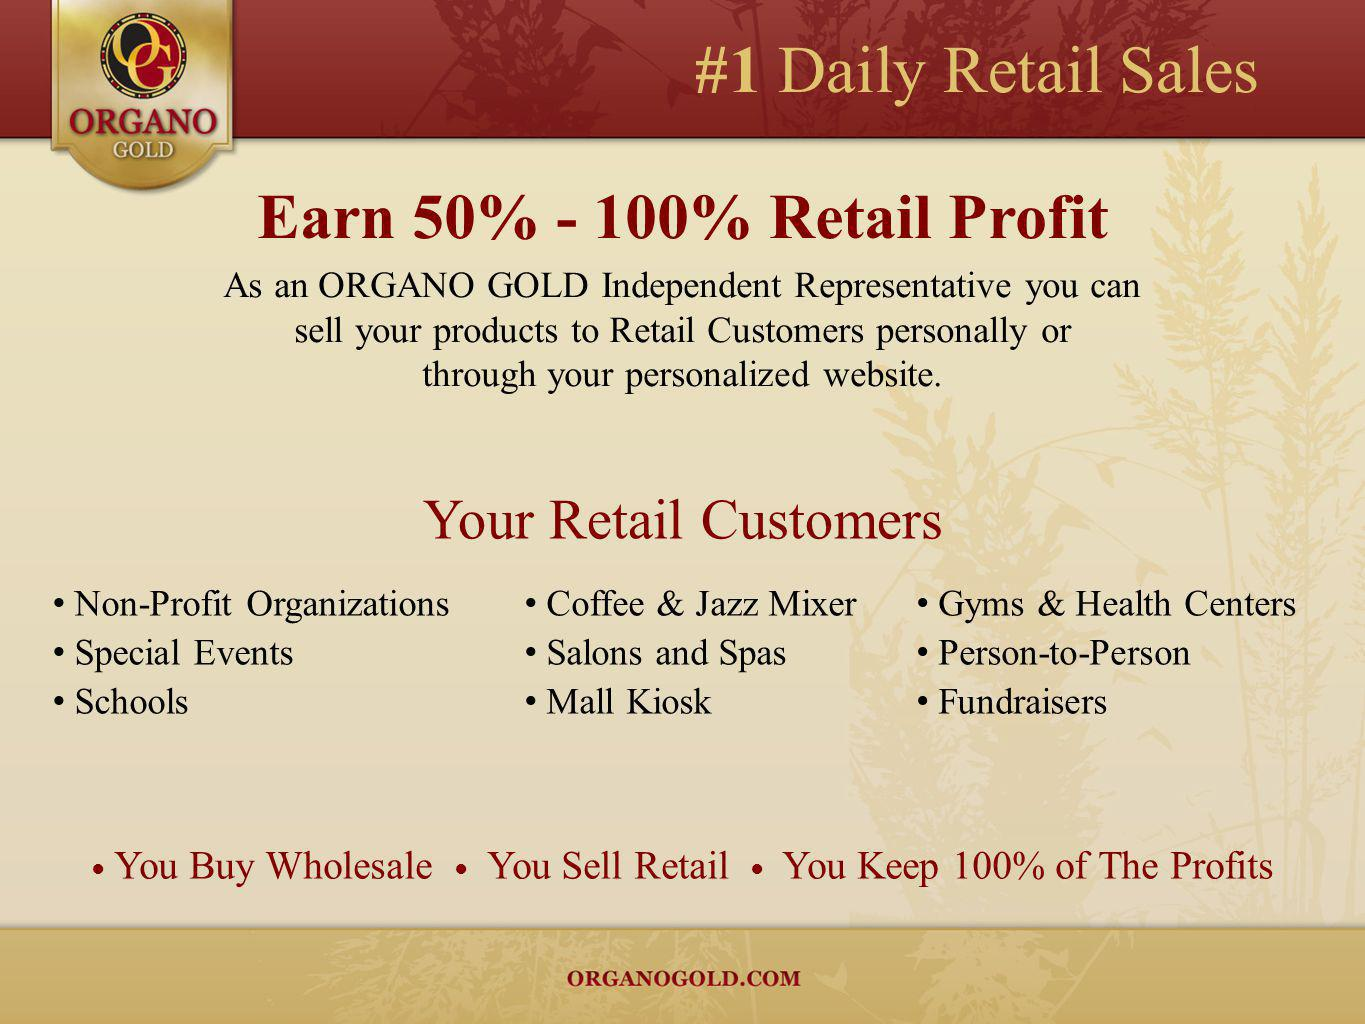 #1 Daily Retail Sales Earn 50% - 100% Retail Profit